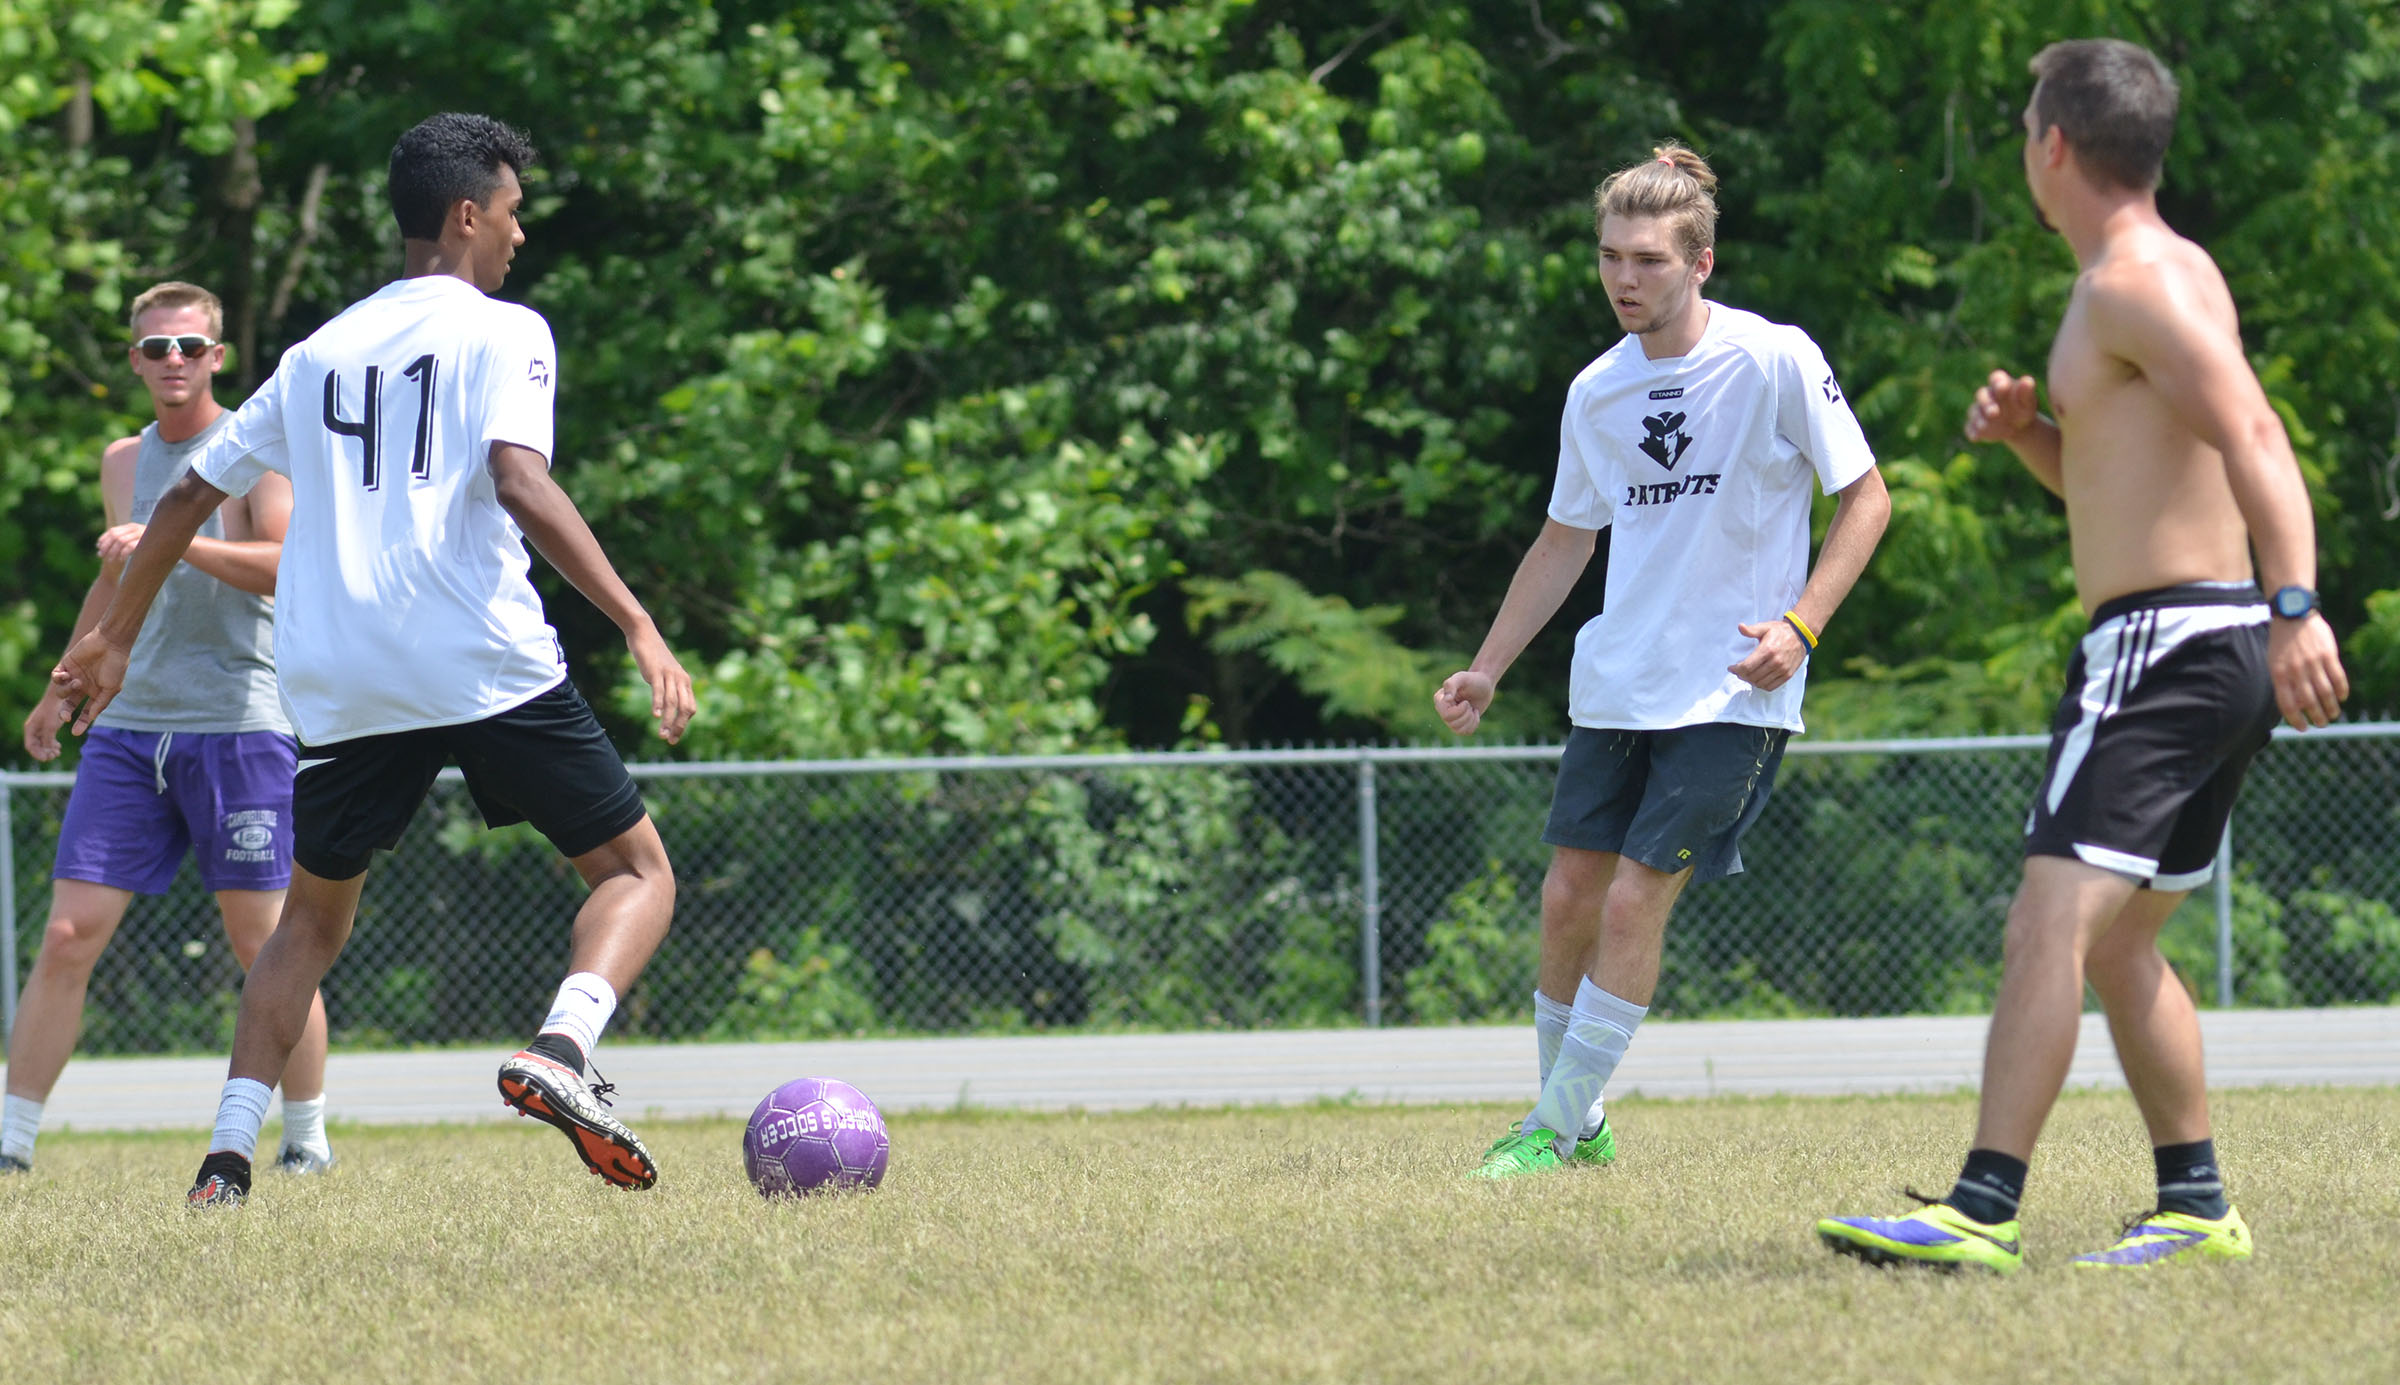 CHS soccer alumni player Daniel Silva, who graduated in May, kicks the ball to teammate Christian Berry, a senior.